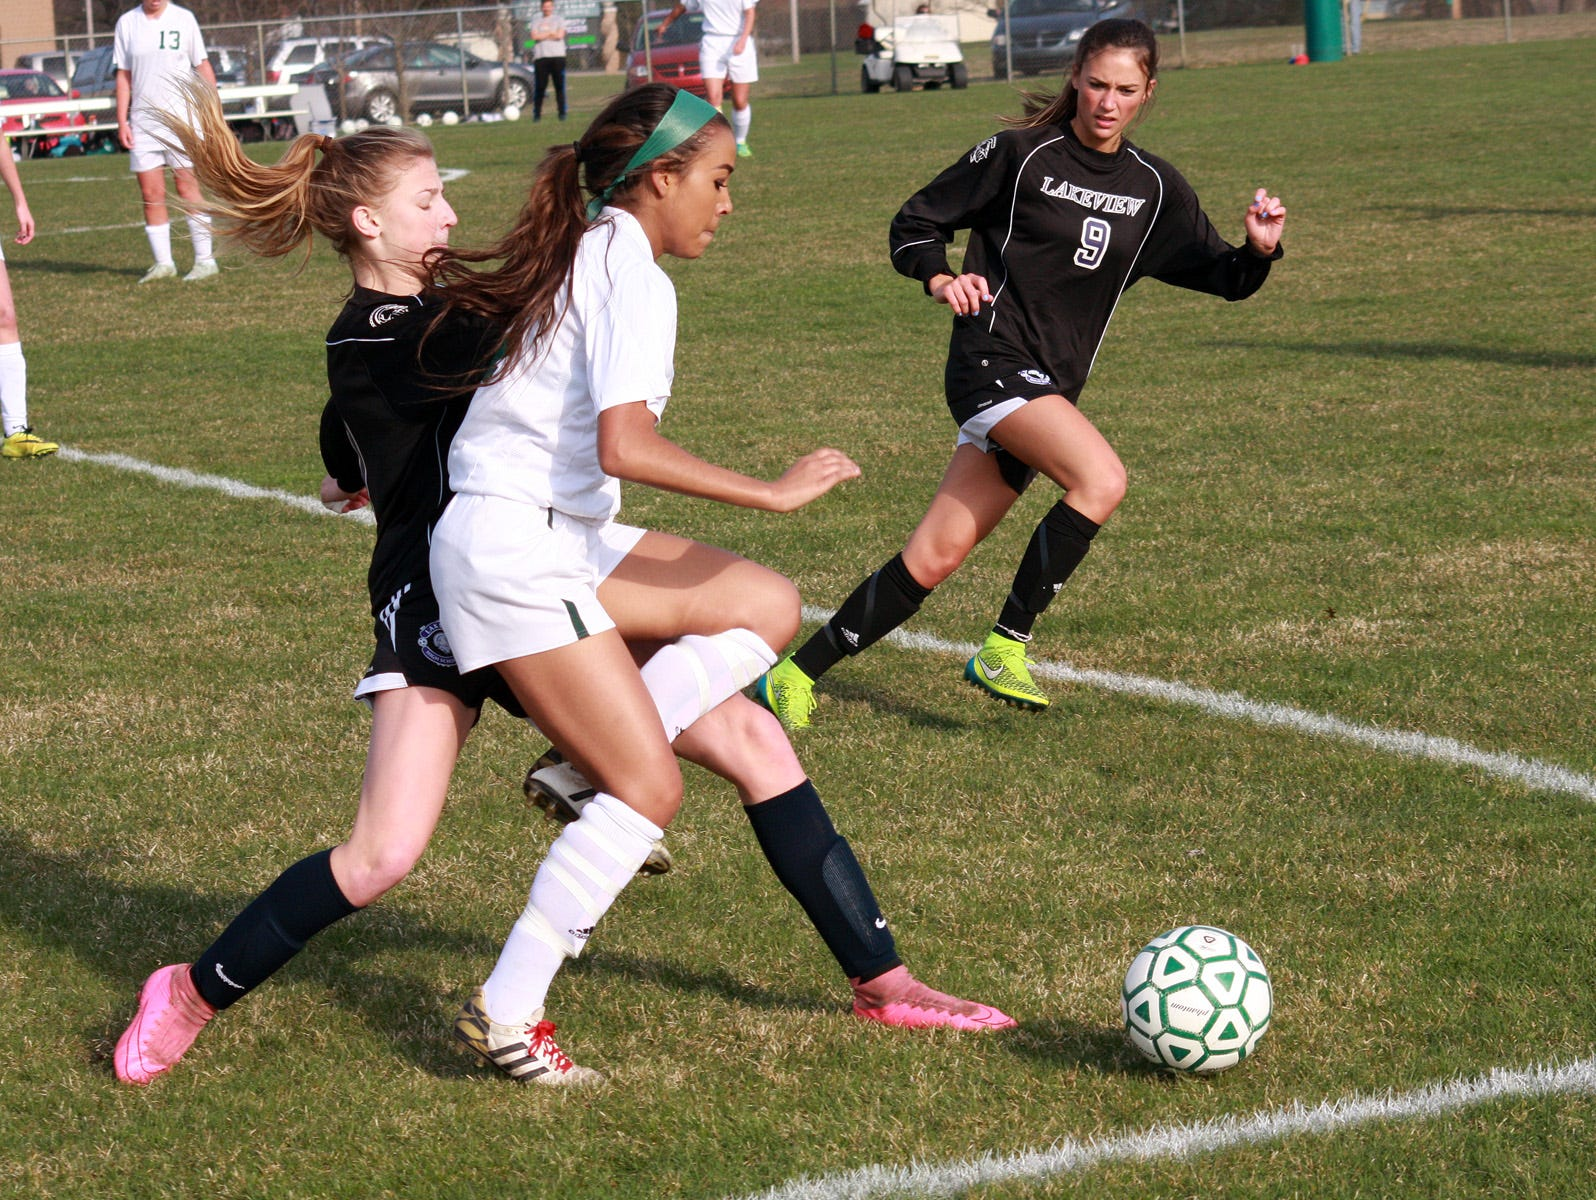 Lakeview's Ava Cook and Pennfield's Sonata Beasley battle for the ball in action earlier this season.